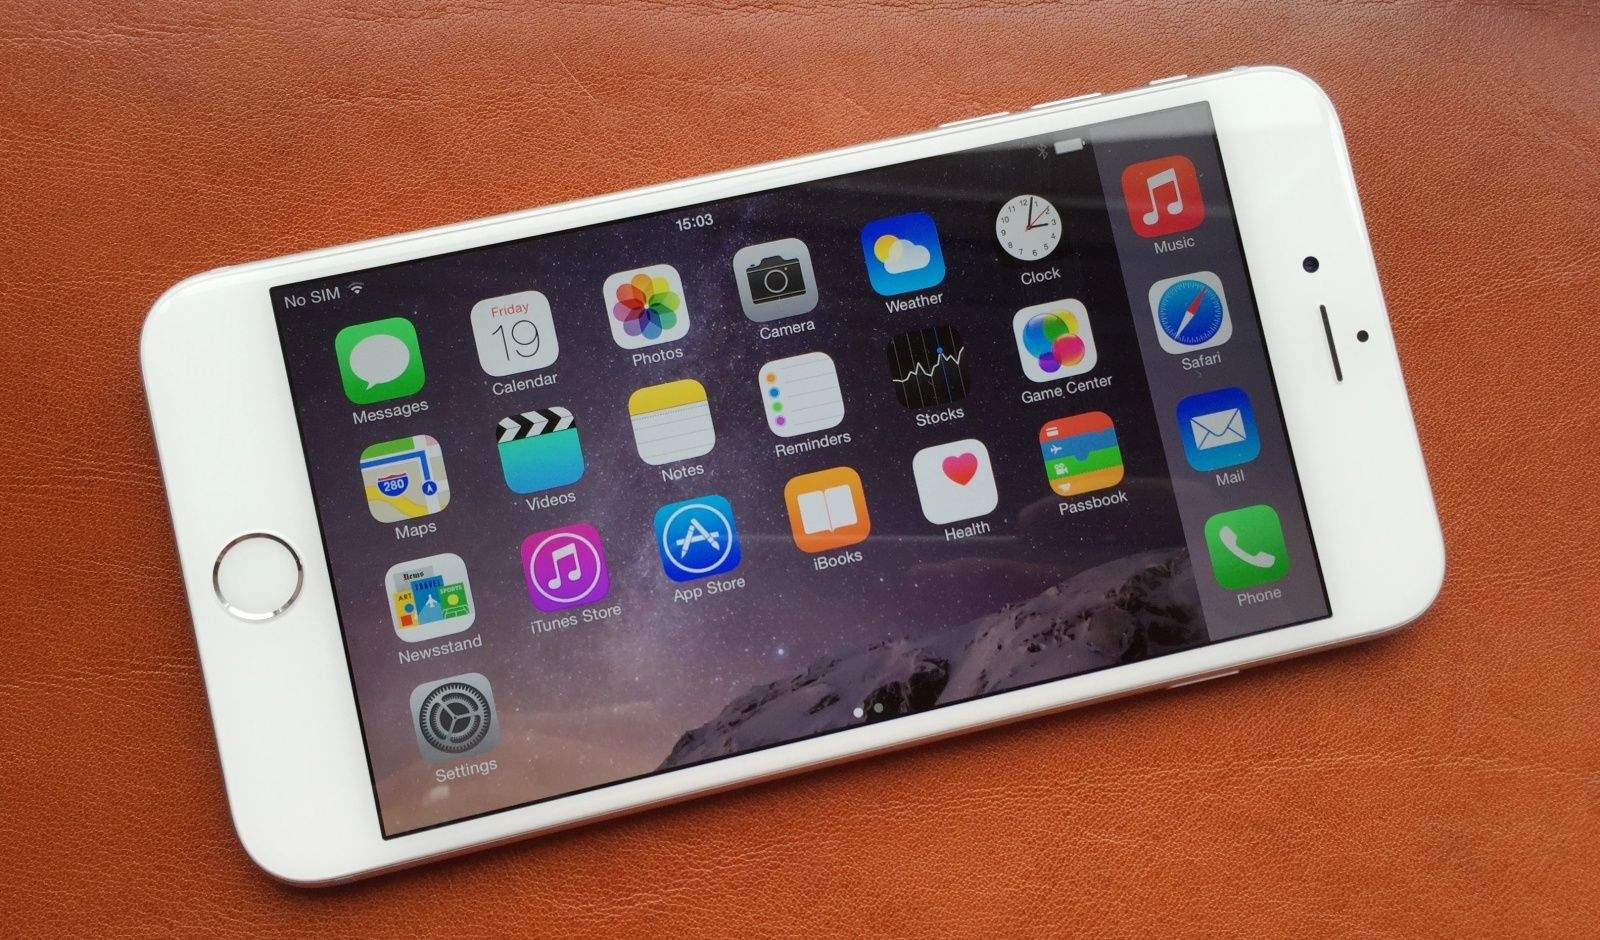 The iPhone 6 Plus is already king of the phablets. Photo: Killian Bell/Cult of Mac